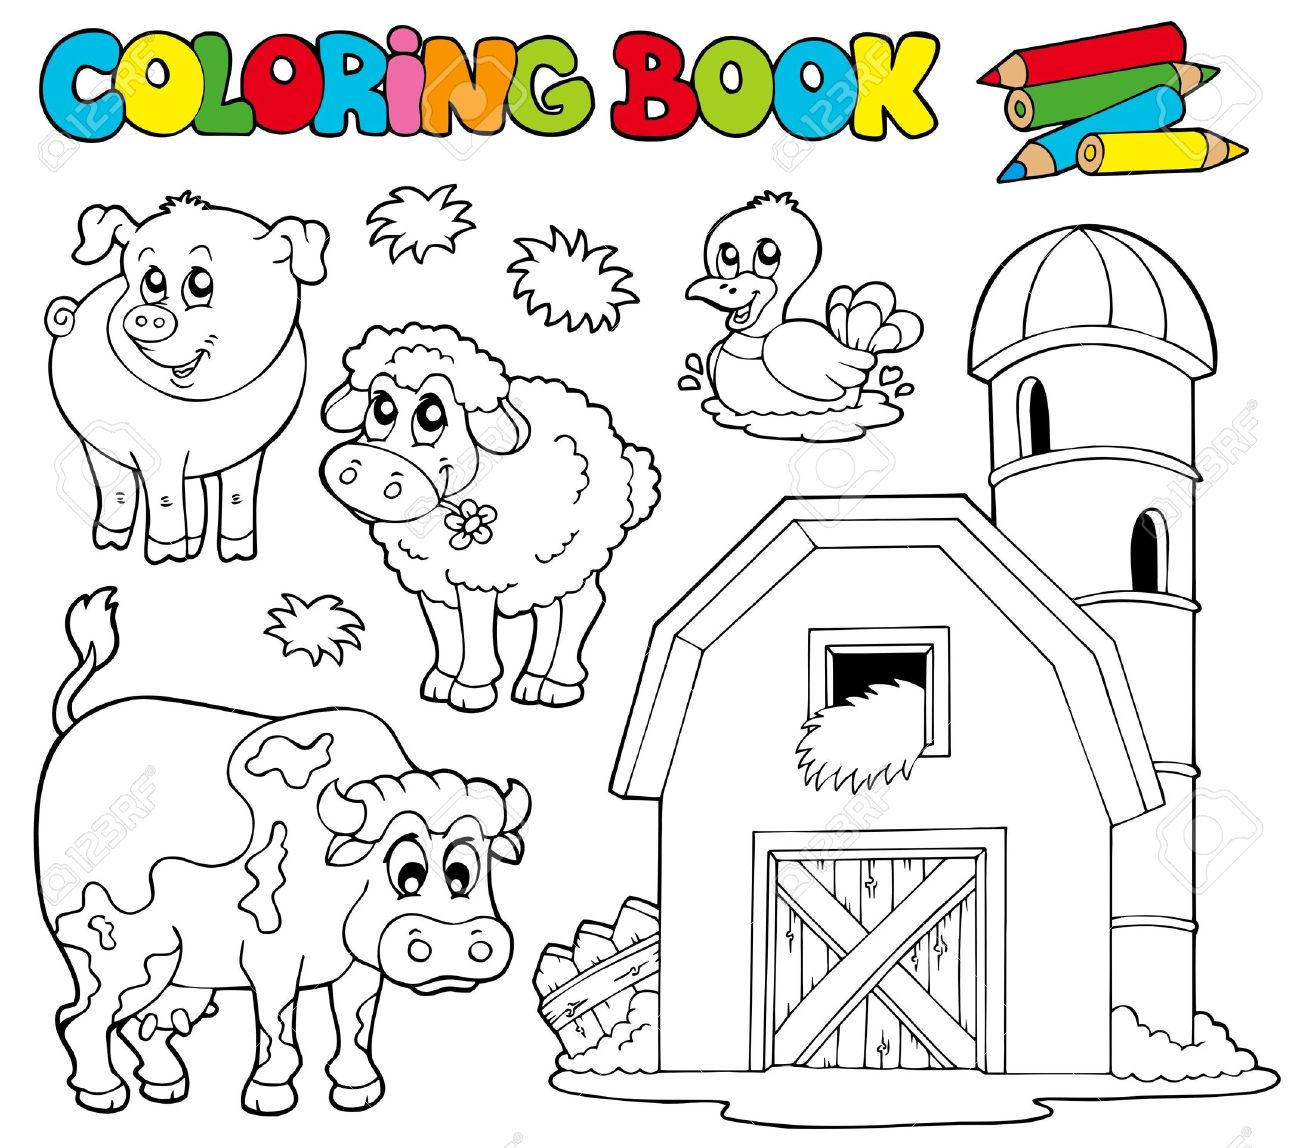 Coloring Book With Farm Animals - Illustration. Royalty Free ...